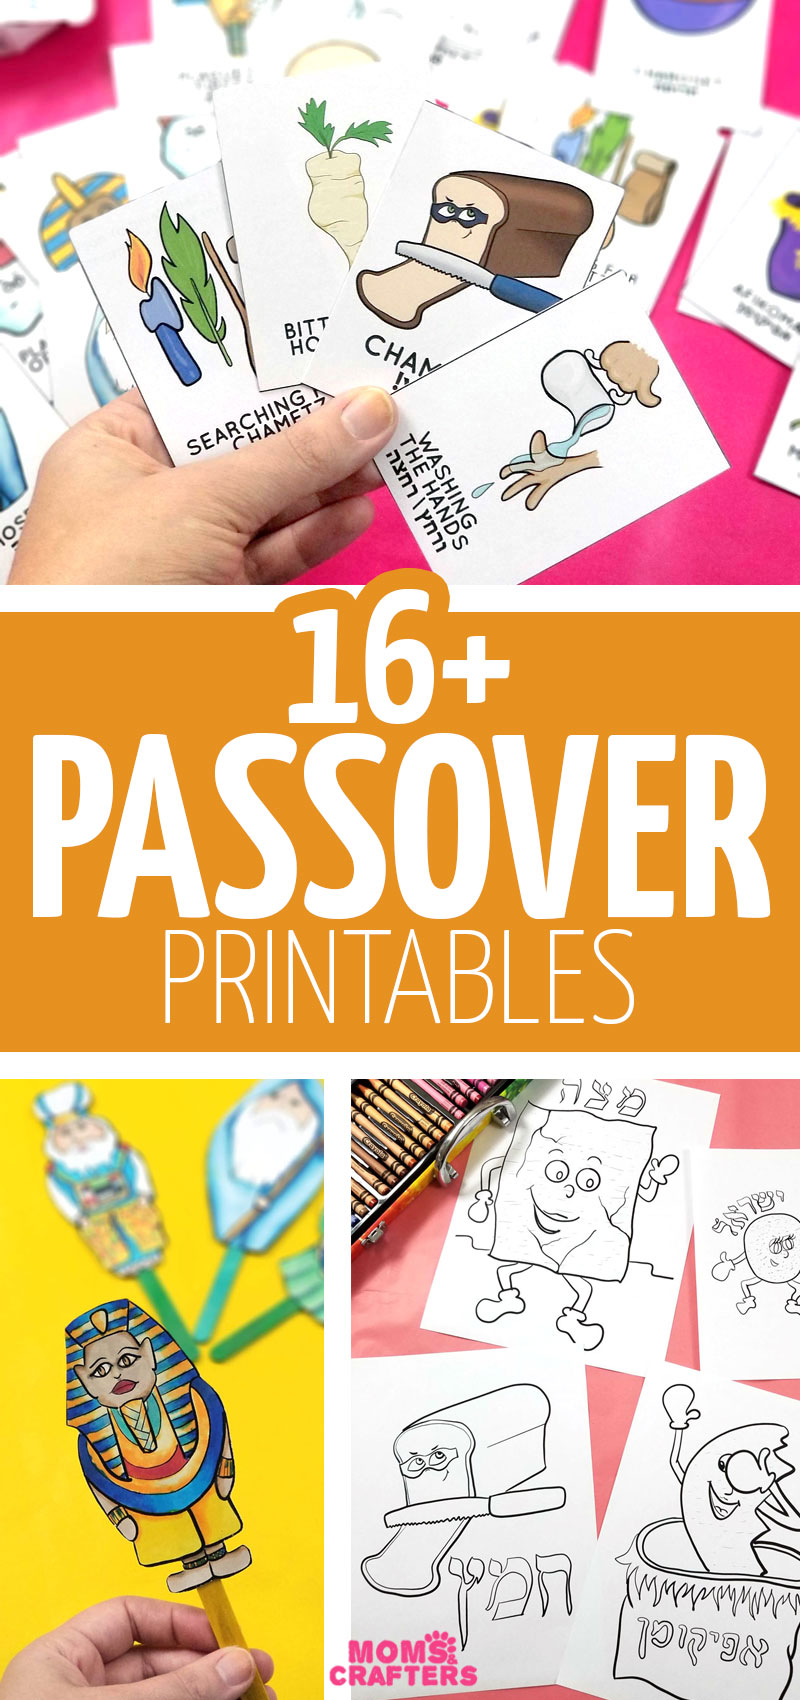 photograph regarding Printable Haggadah Free identified as Pover Printables - Coloring Webpages, Game titles, and Decor